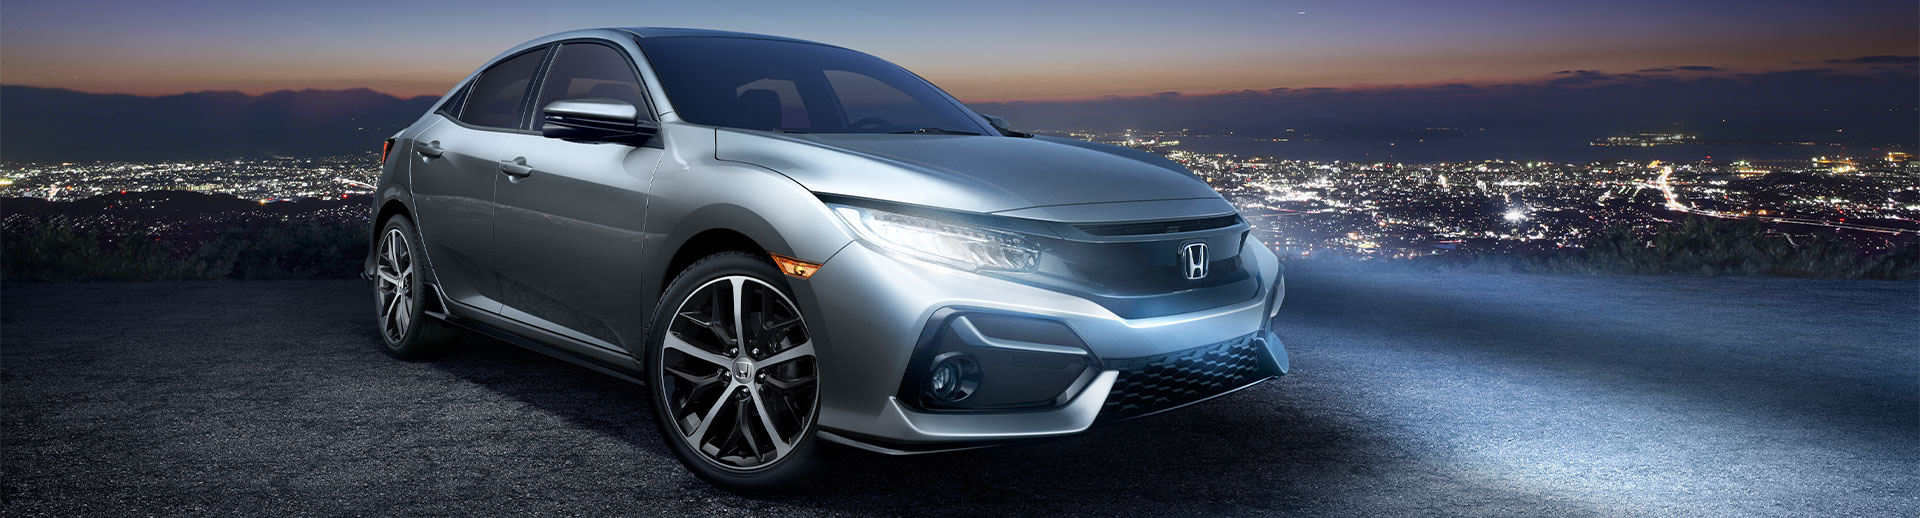 2020 Honda Civic Hatchback Lifestyle Photo